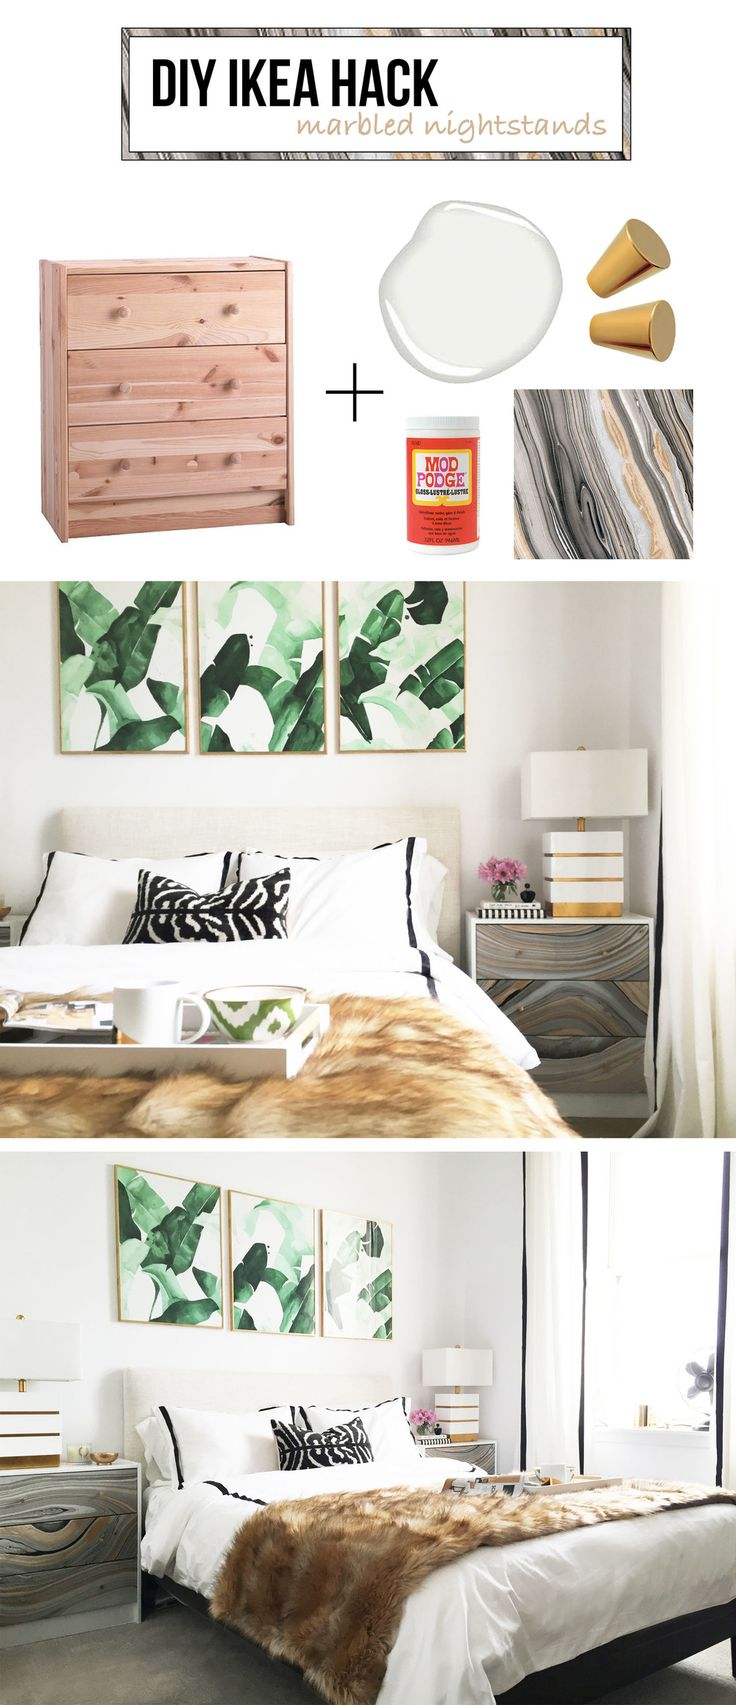 The best images about home diy on pinterest interior